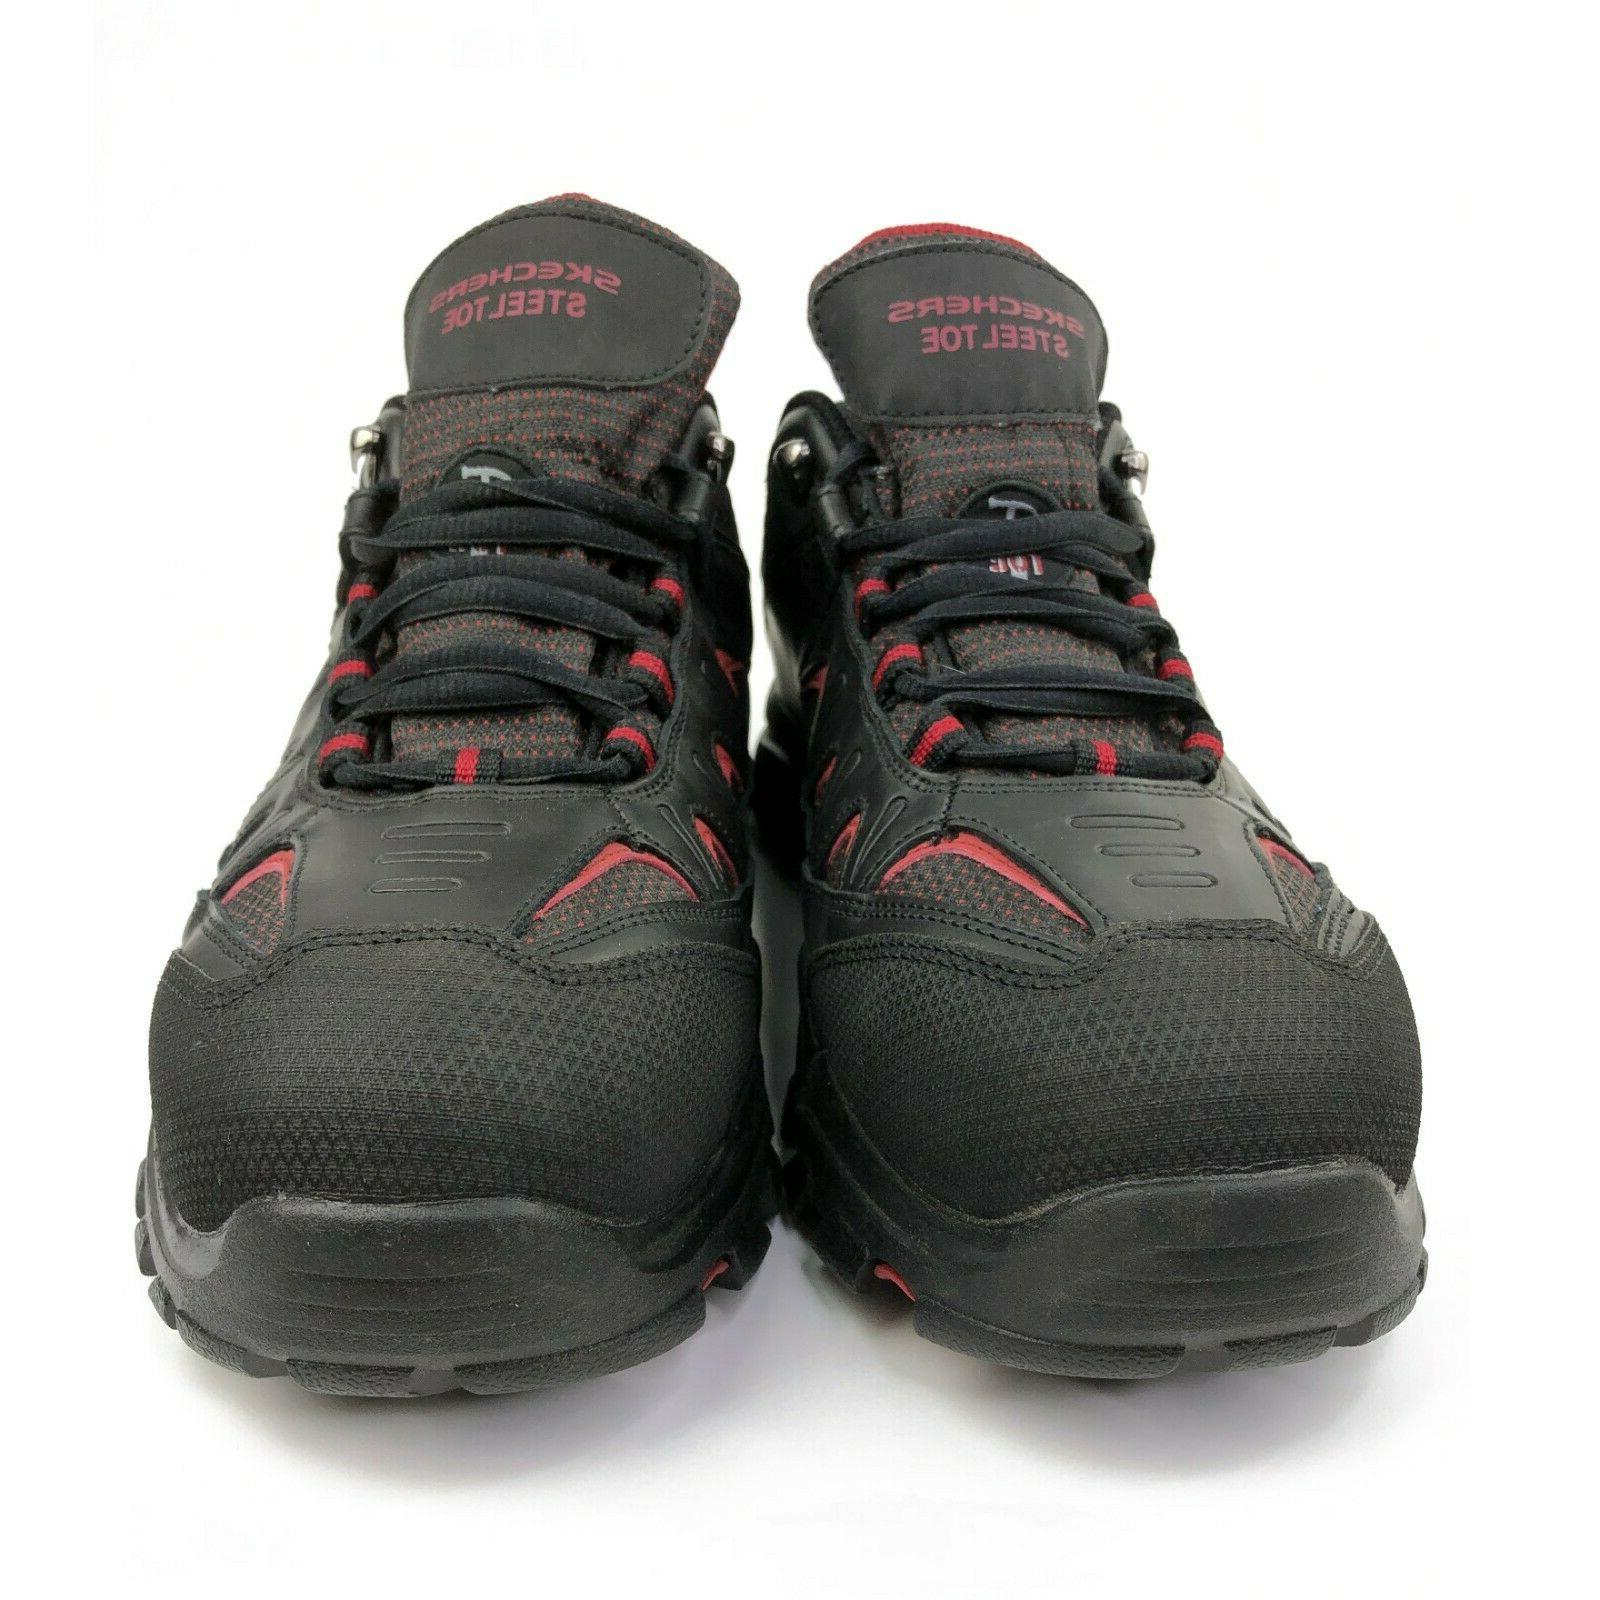 Sketchers Mens Safety Toe Shoes Water UK 8.5